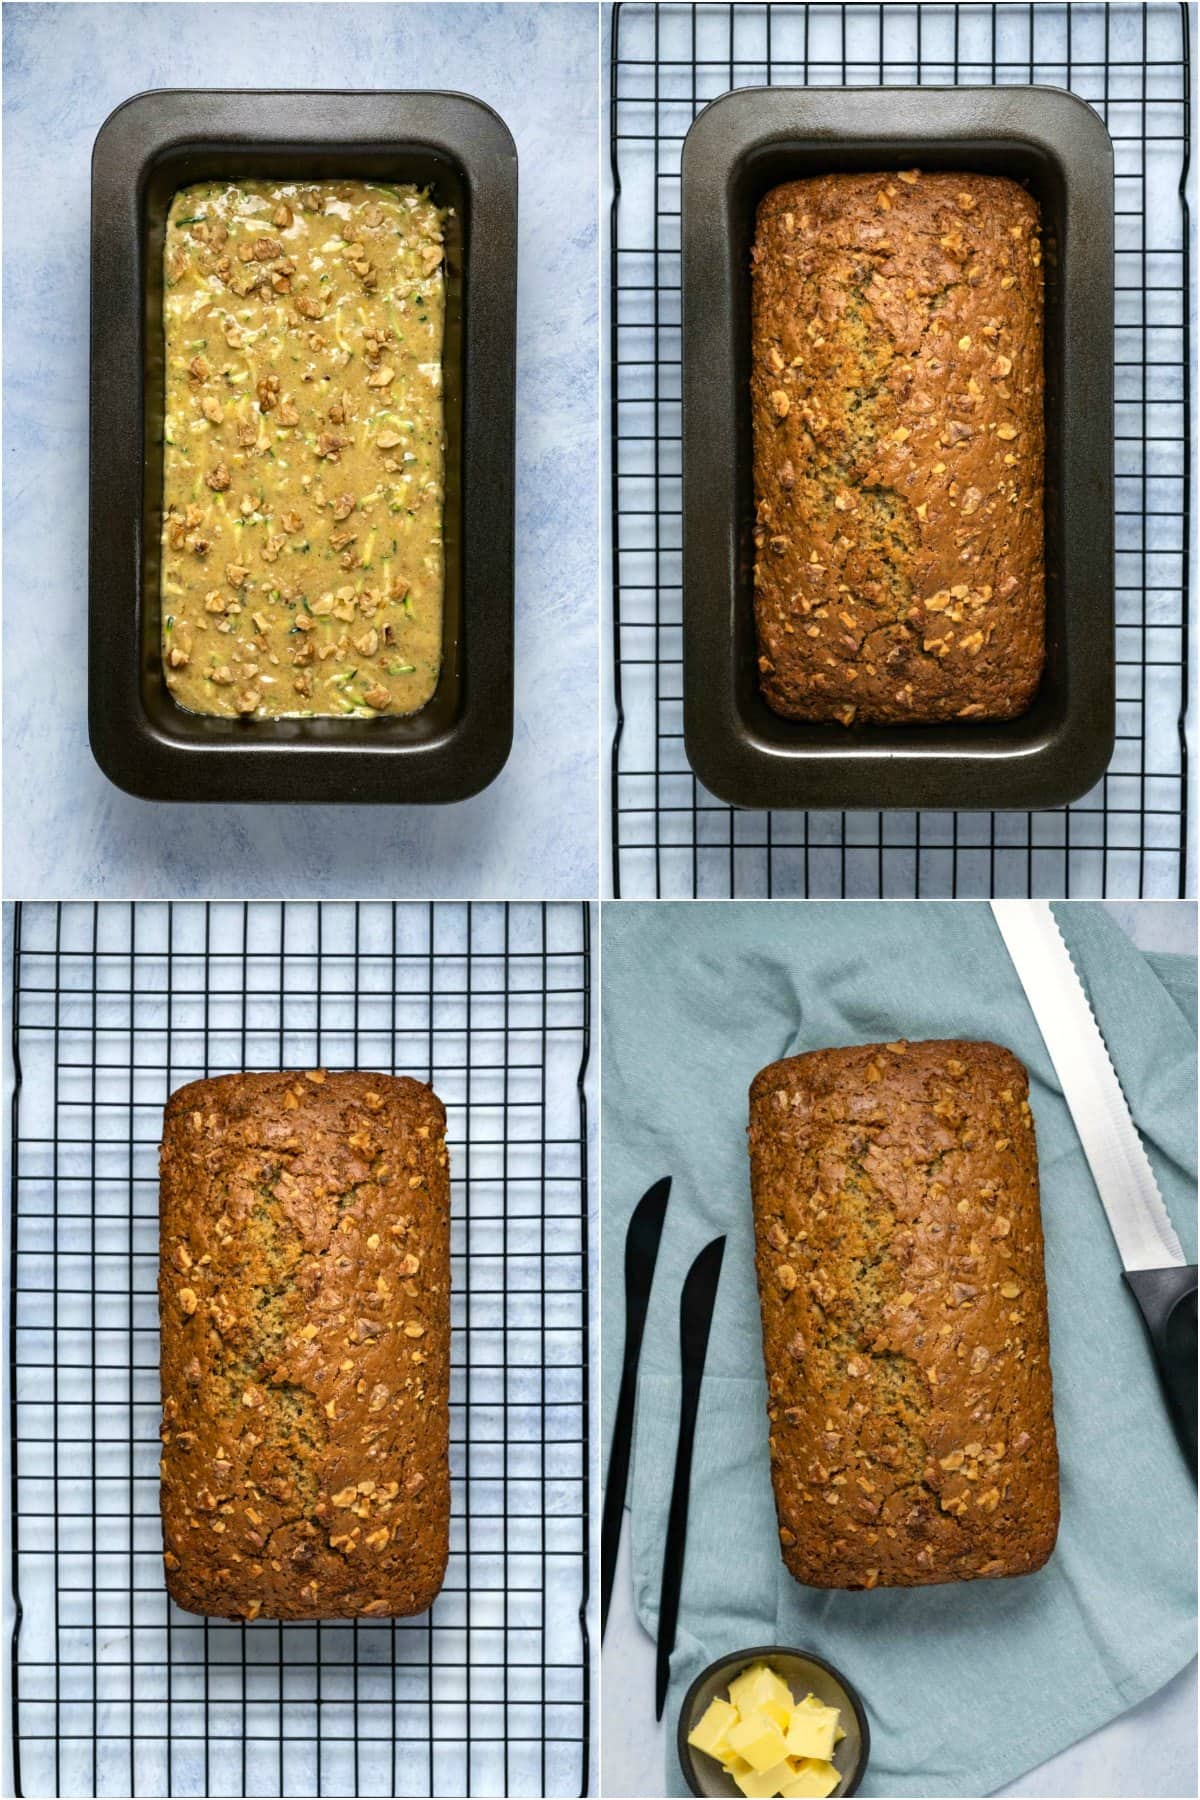 Step by step process photo collage of making zucchini bread.